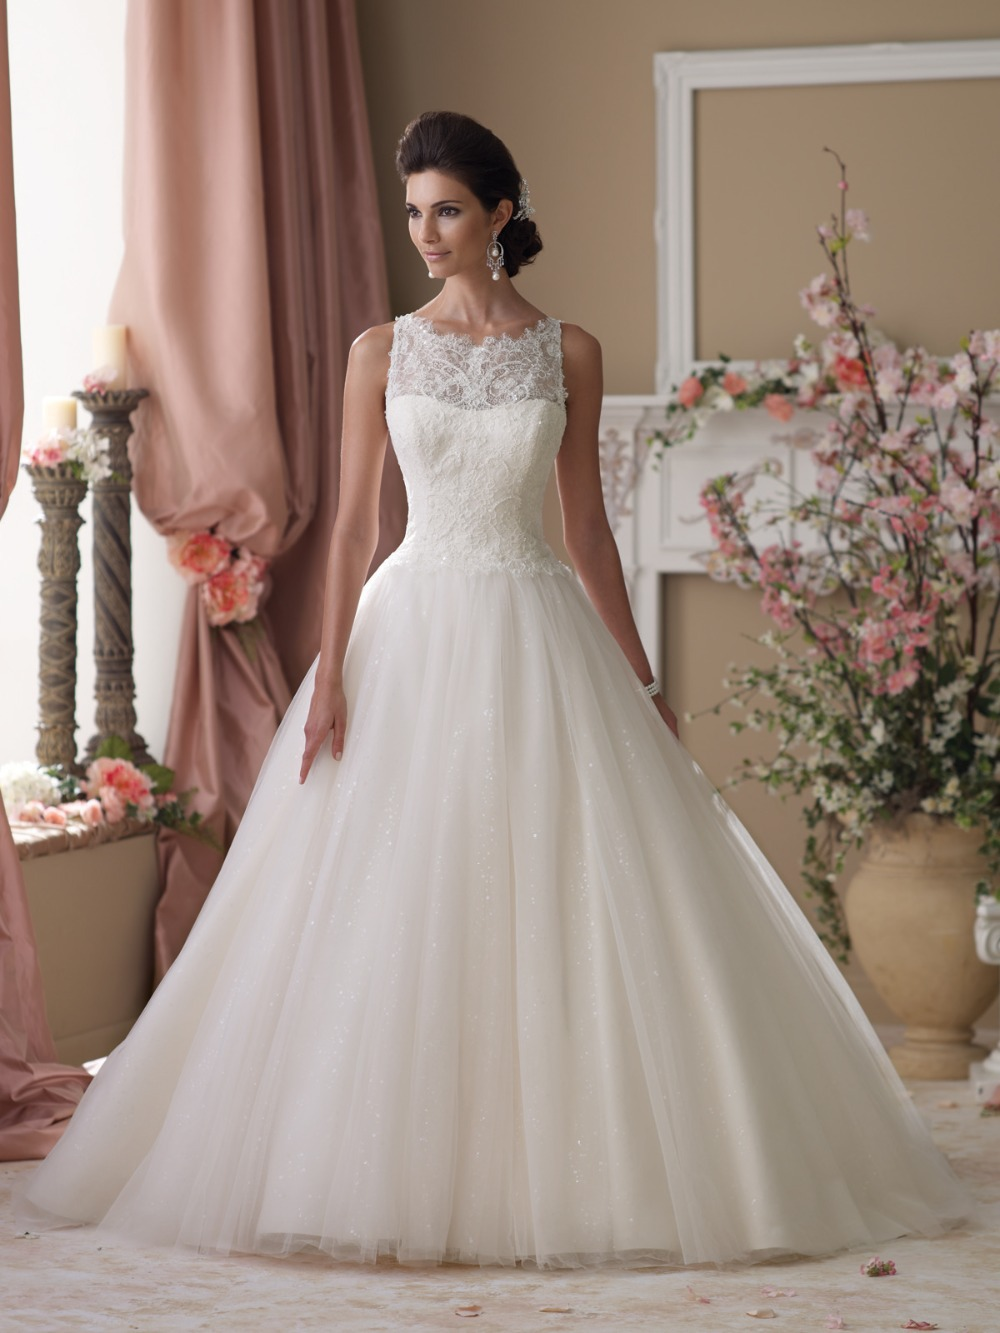 Charming High Collar Lace And See Through Wedding Dresses Women - Covered Back Wedding Dress